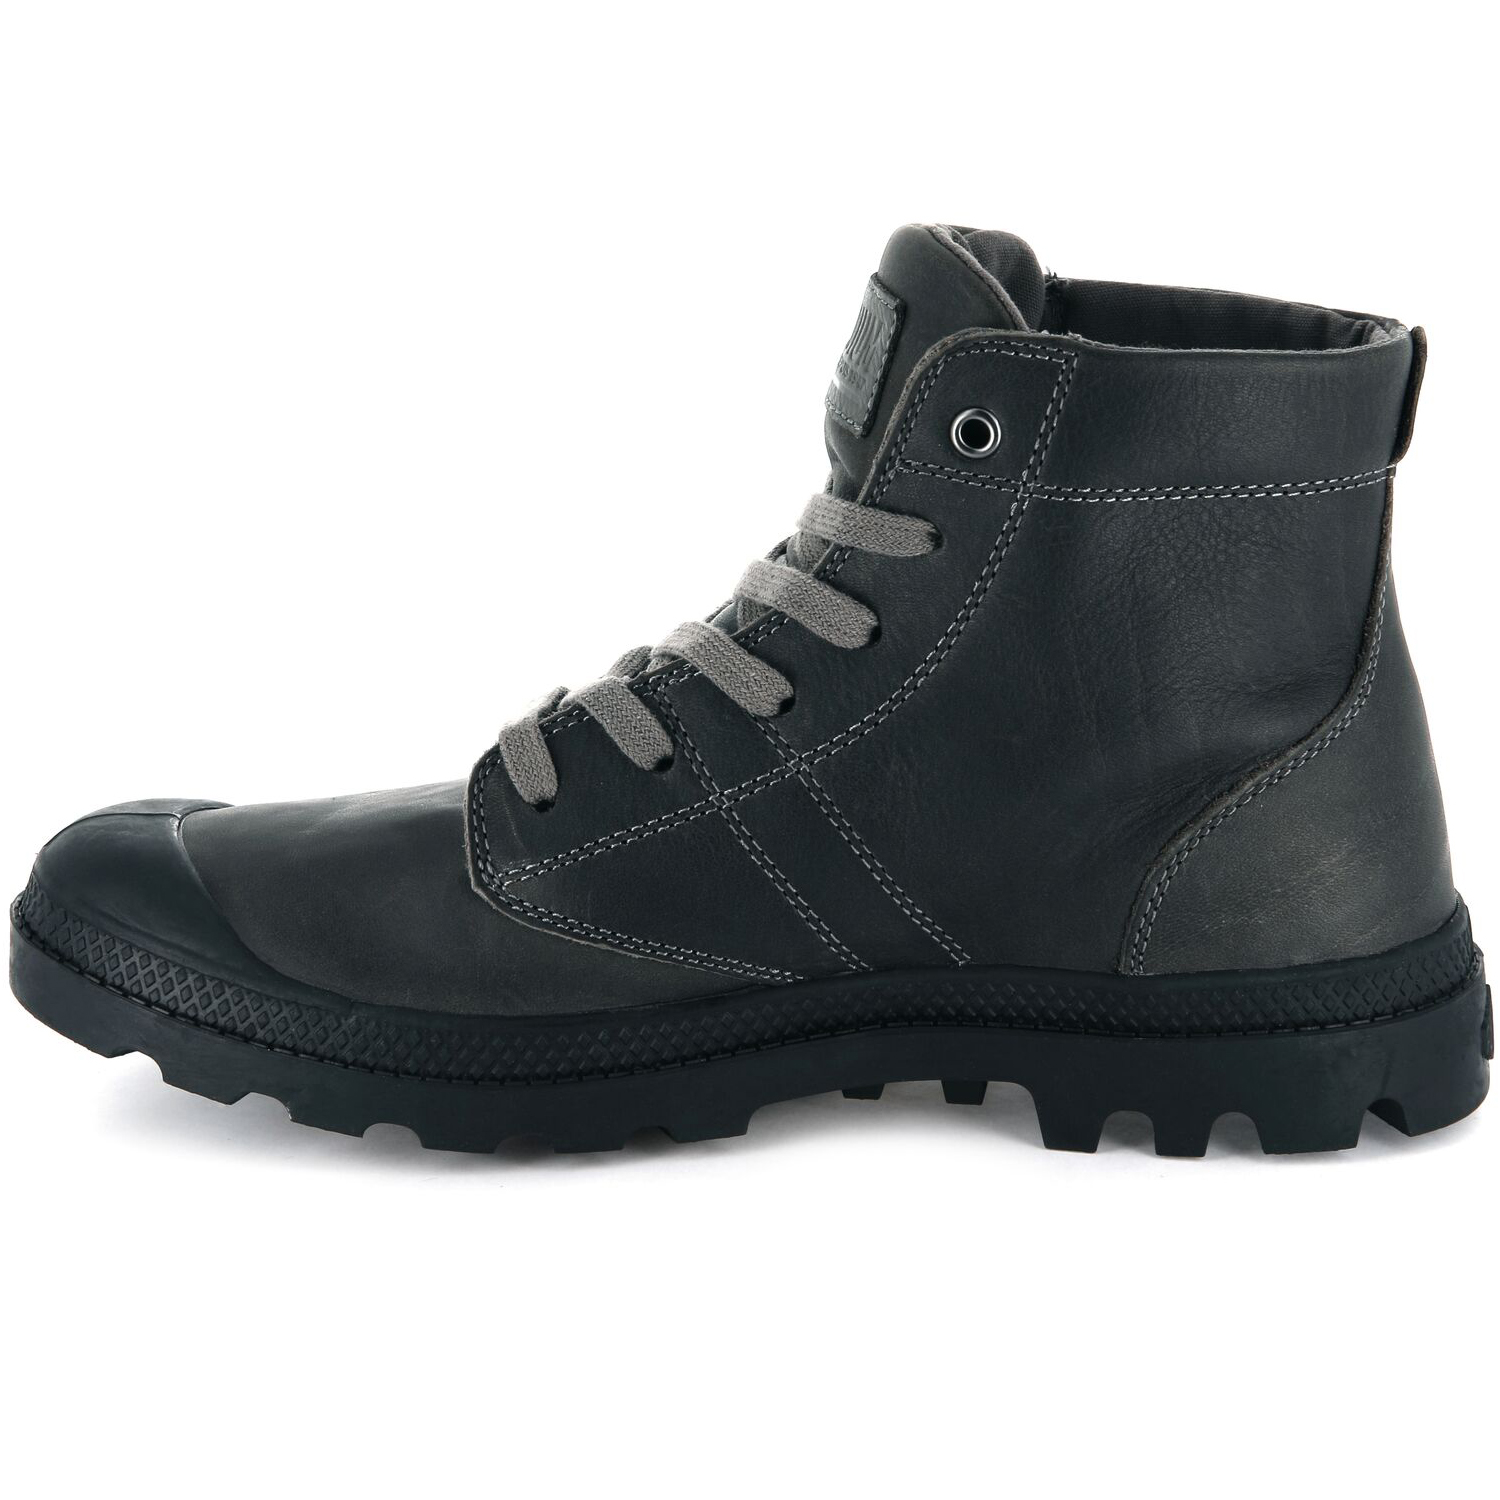 Palladium-Mens-Pallabrousse-Leather-Lace-Up-Boots-Walking-Chukka-Ankle-Shoes thumbnail 9